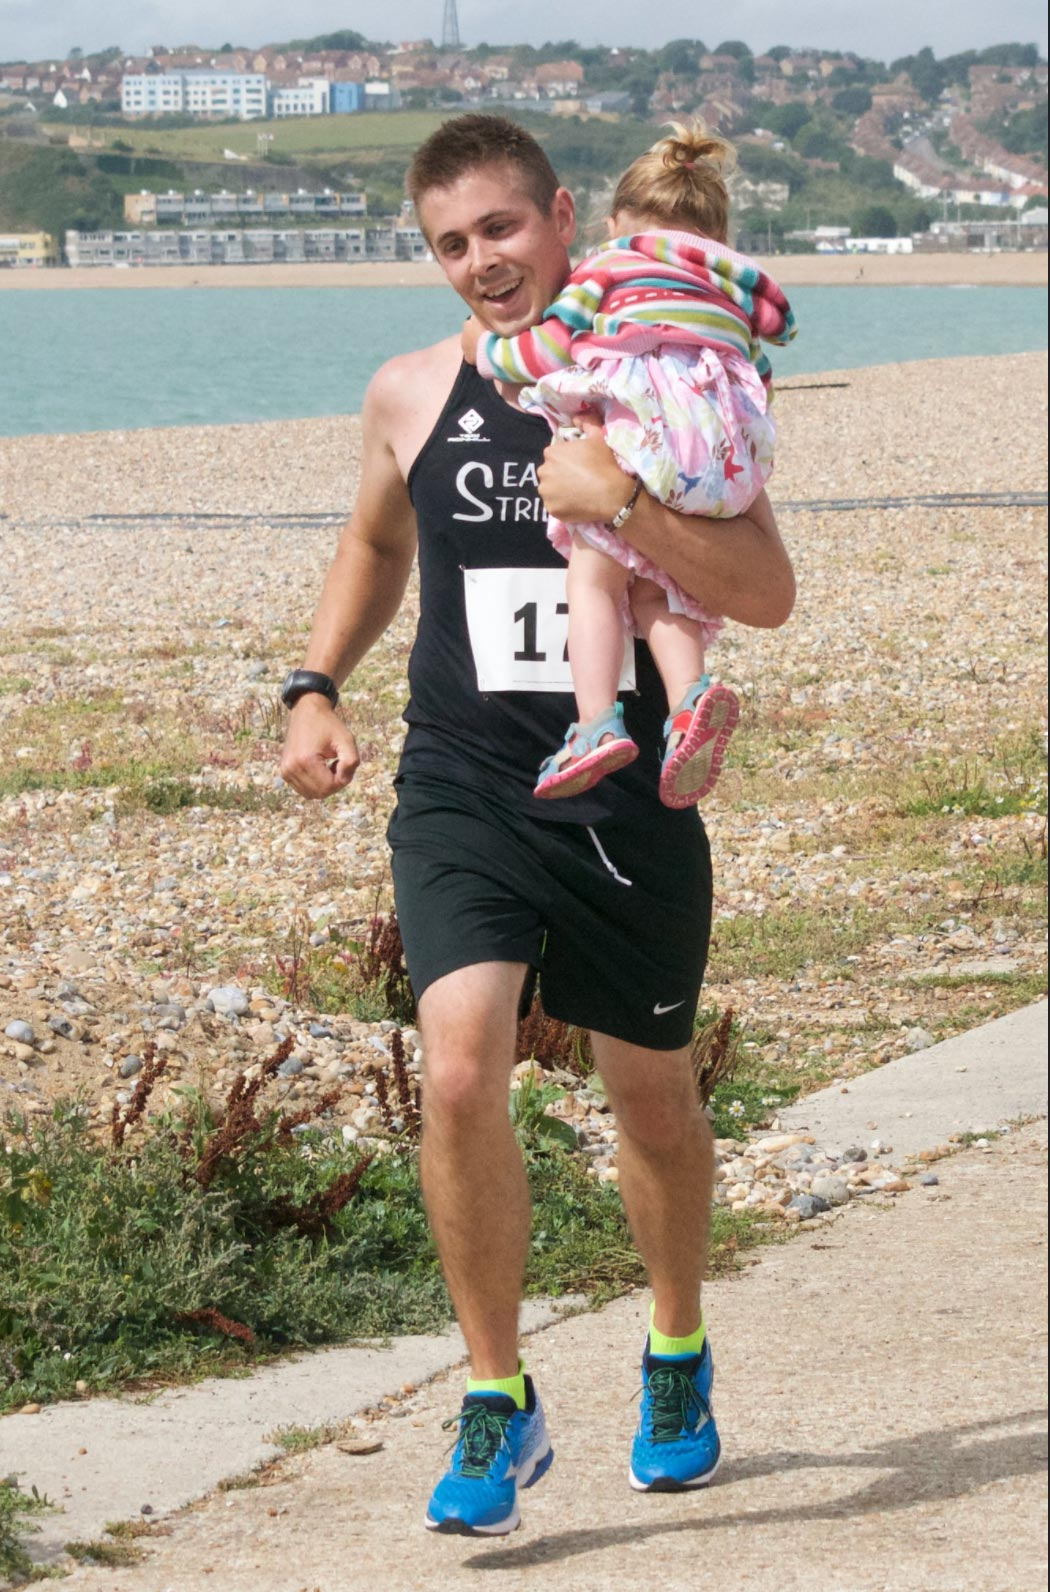 Runner carrying child in the Striders 30th Anniversary Run